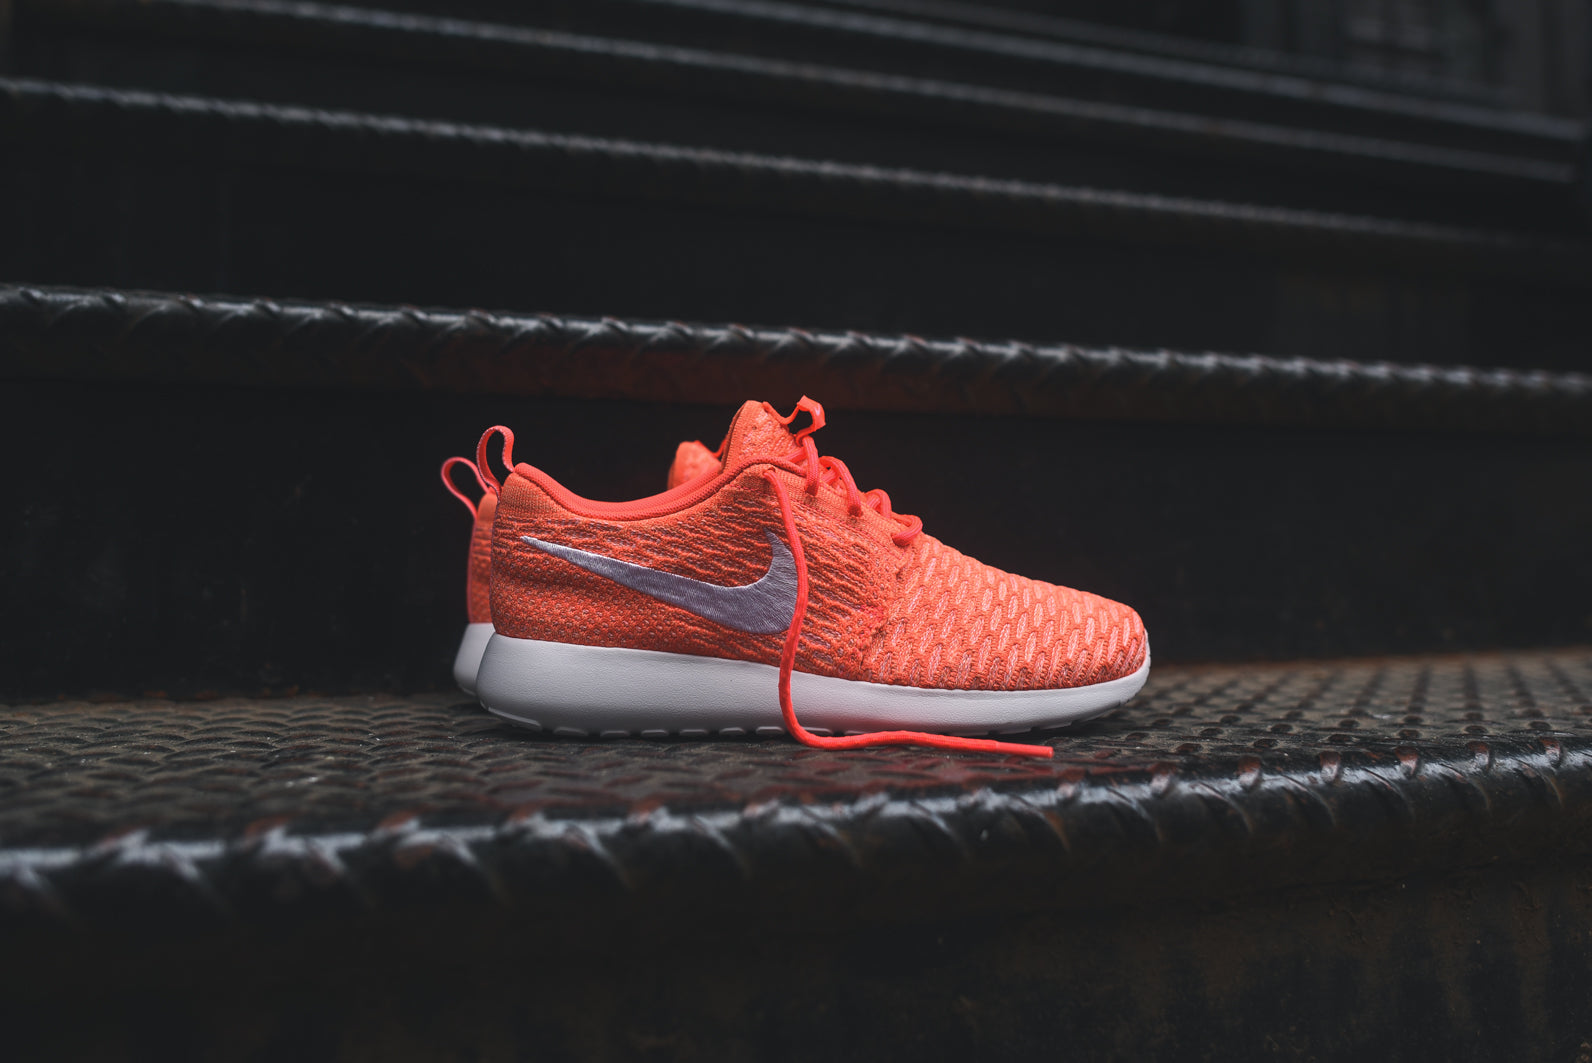 new york a141a d32af Nike WMNS Flyknit Roshe Run - Hot Lava   White   Sunset Glow